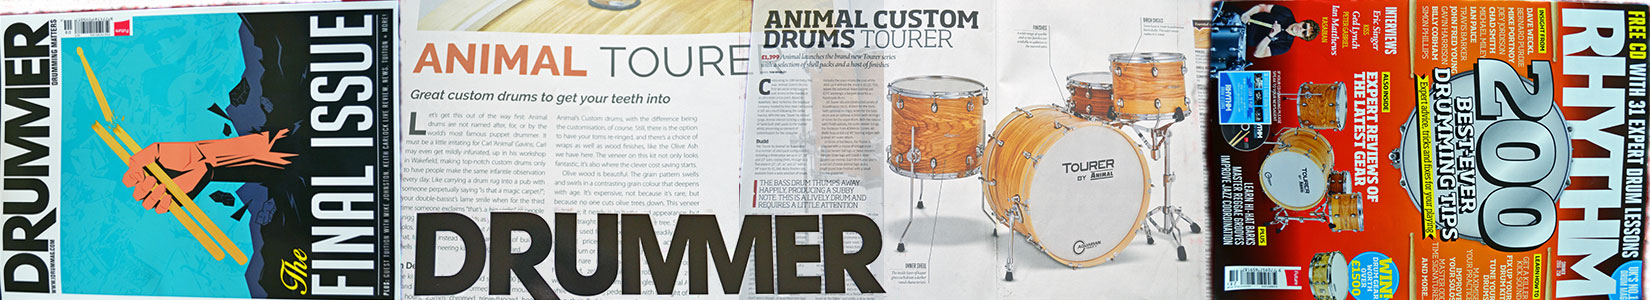 Animal Custom Drums Review